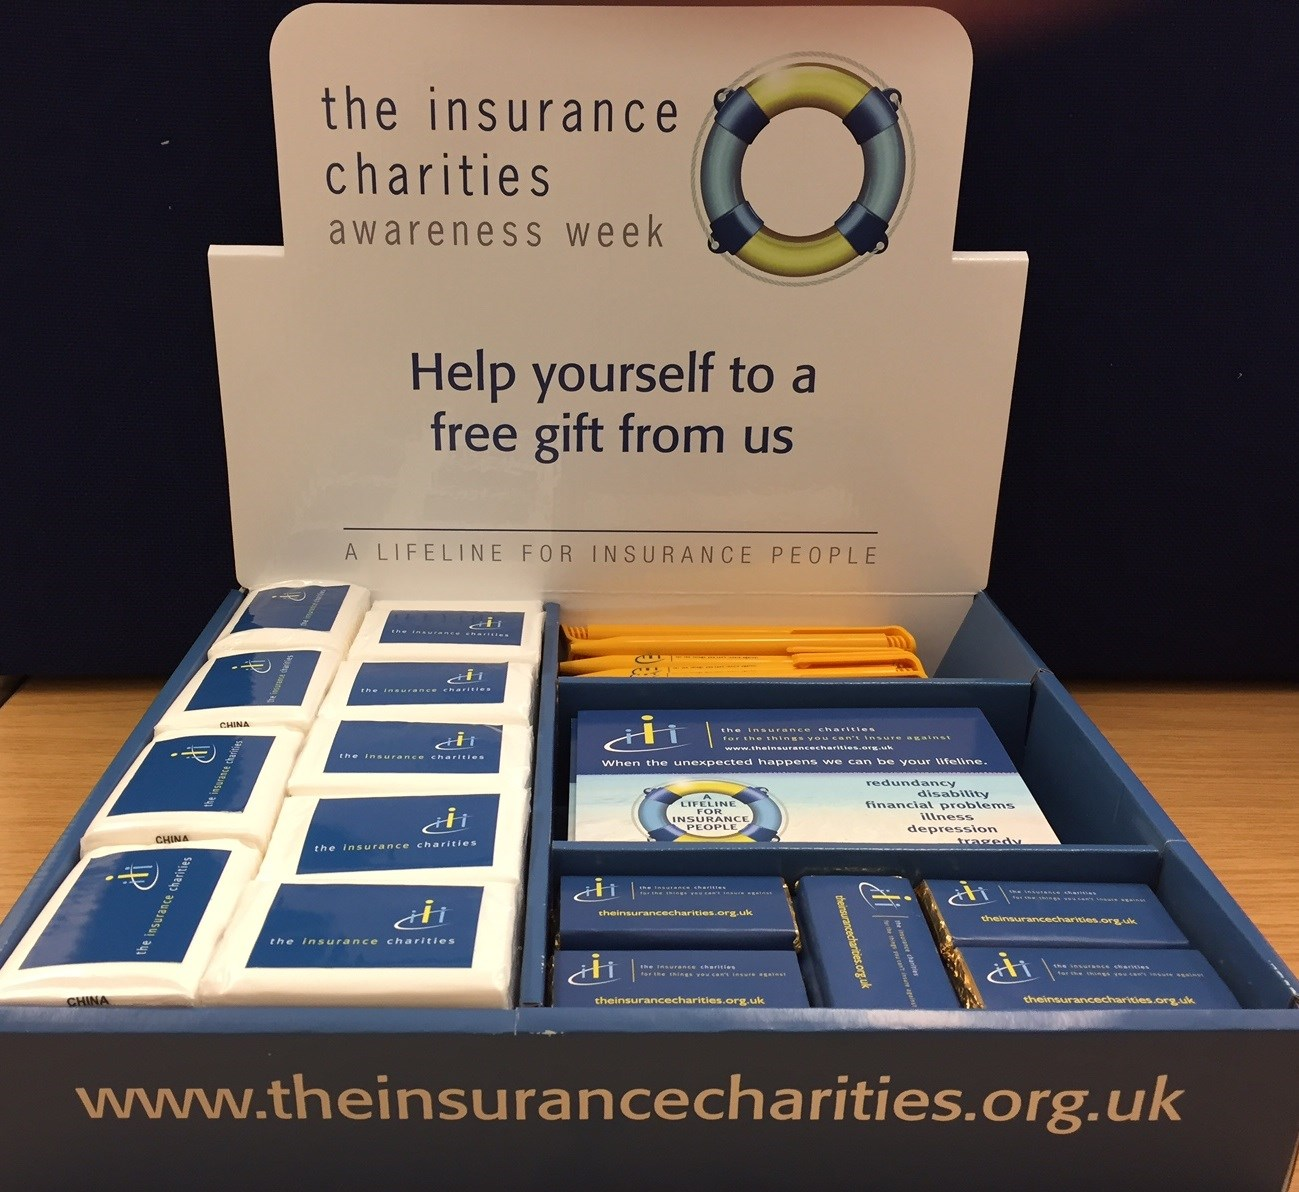 Insurance Charities Awareness Week 2017 - what you need to know!